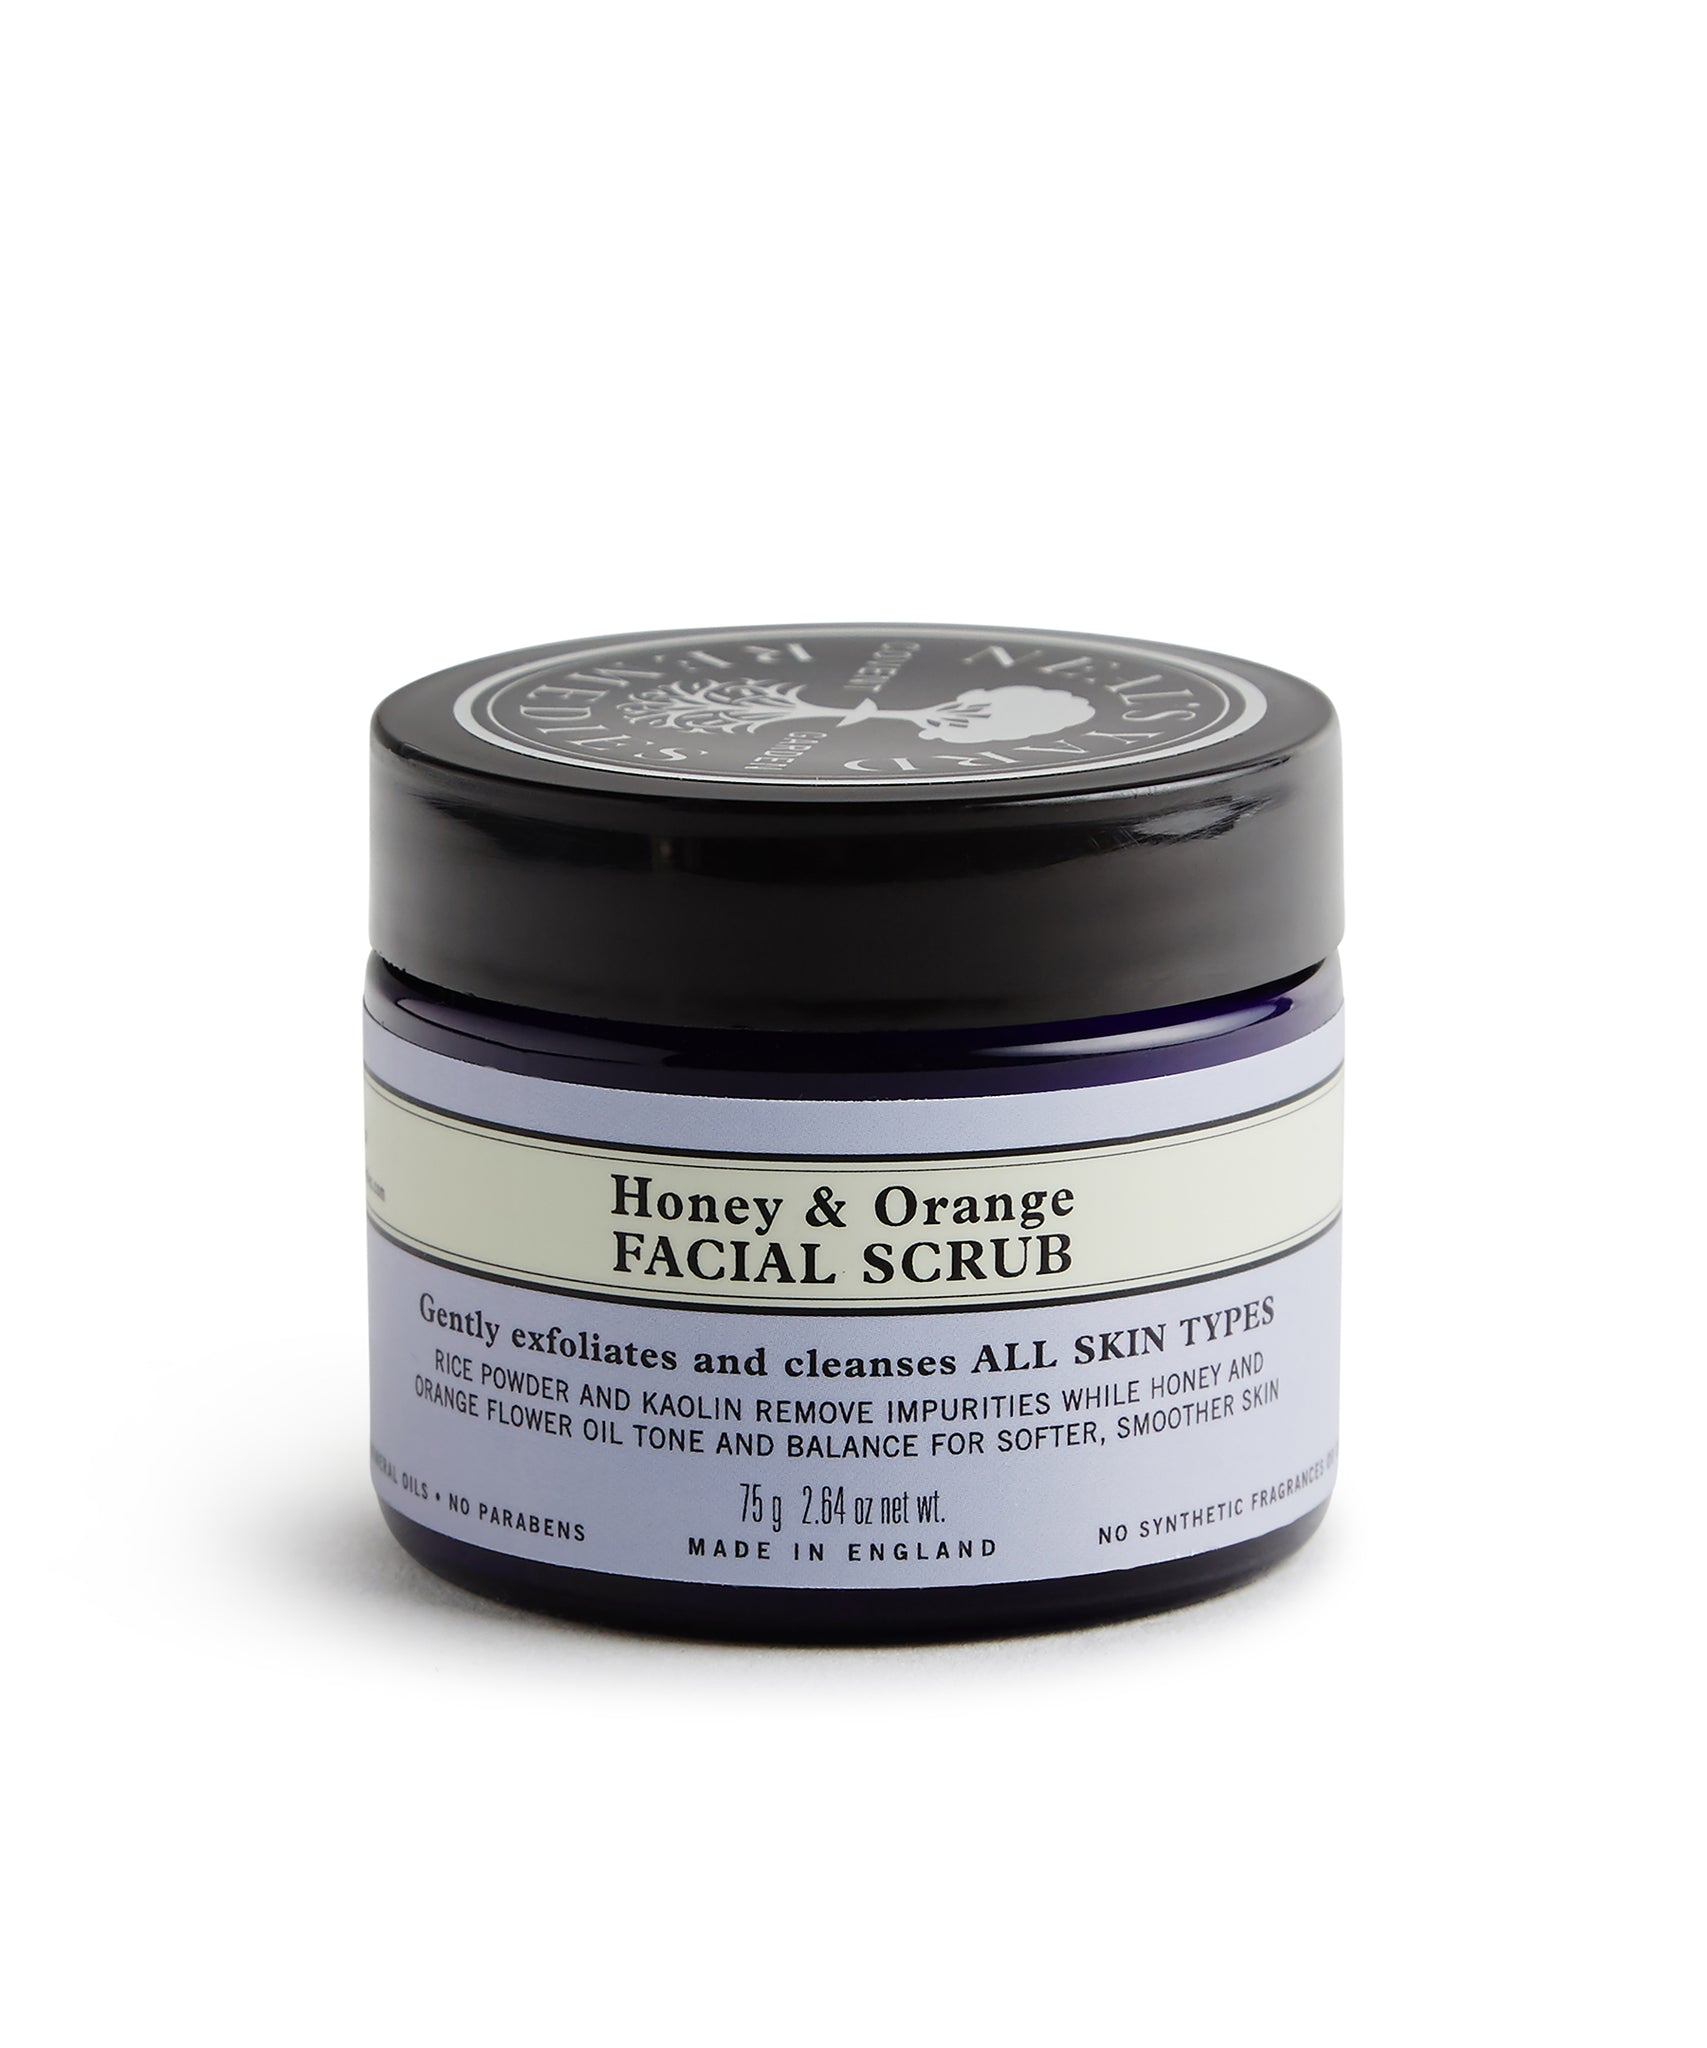 Honey & Orange Facial Scrub by Neal's Yard Remedies